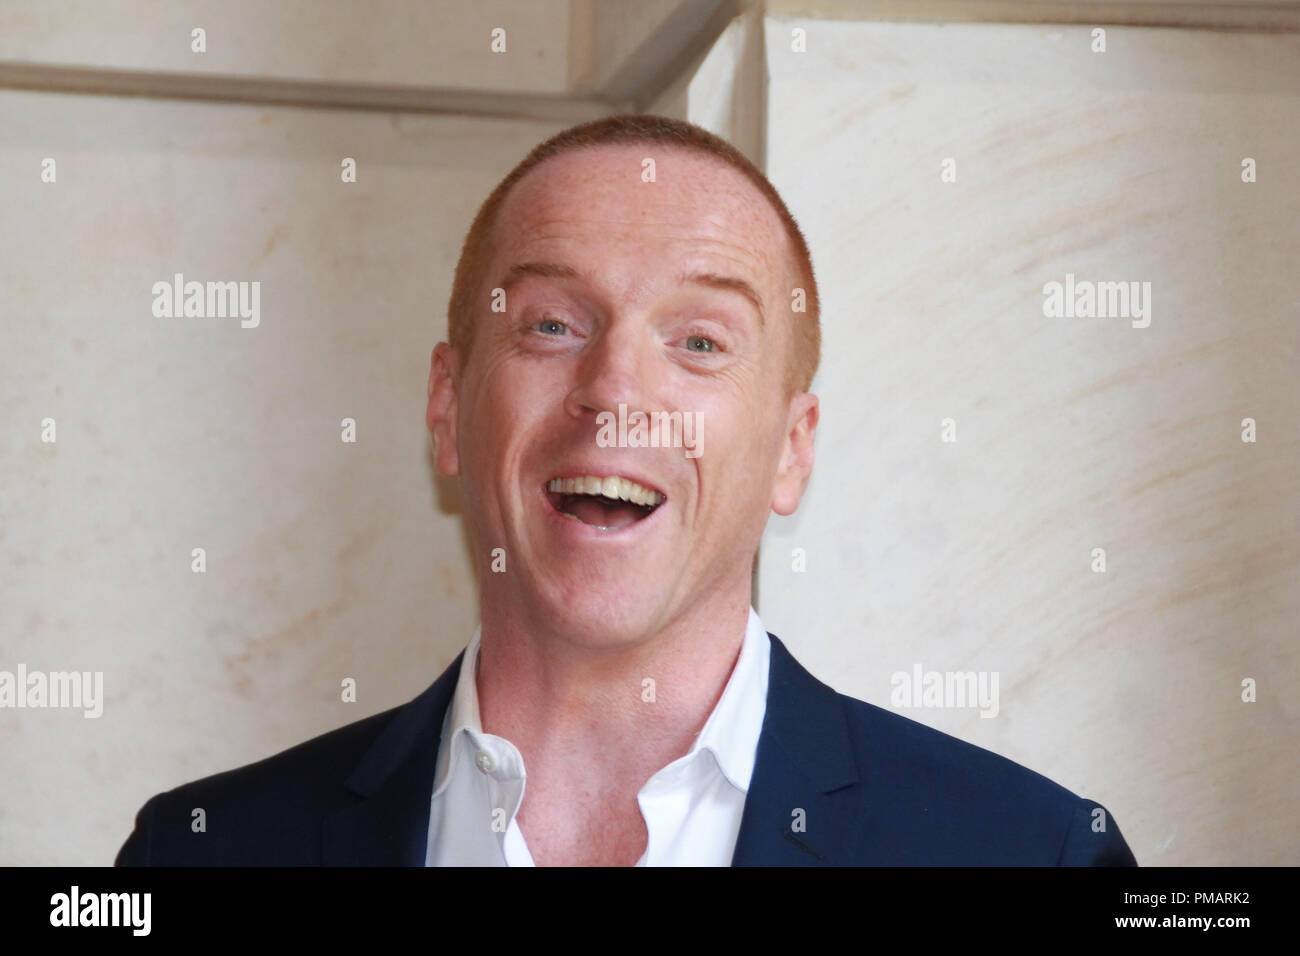 Damian Lewis 'Homeland' TV Series Portrait Session, July 29, 2013. Reproduction by American tabloids is absolutely forbidden. File Reference # 32070_023JRC  For Editorial Use Only -  All Rights Reserved - Stock Image